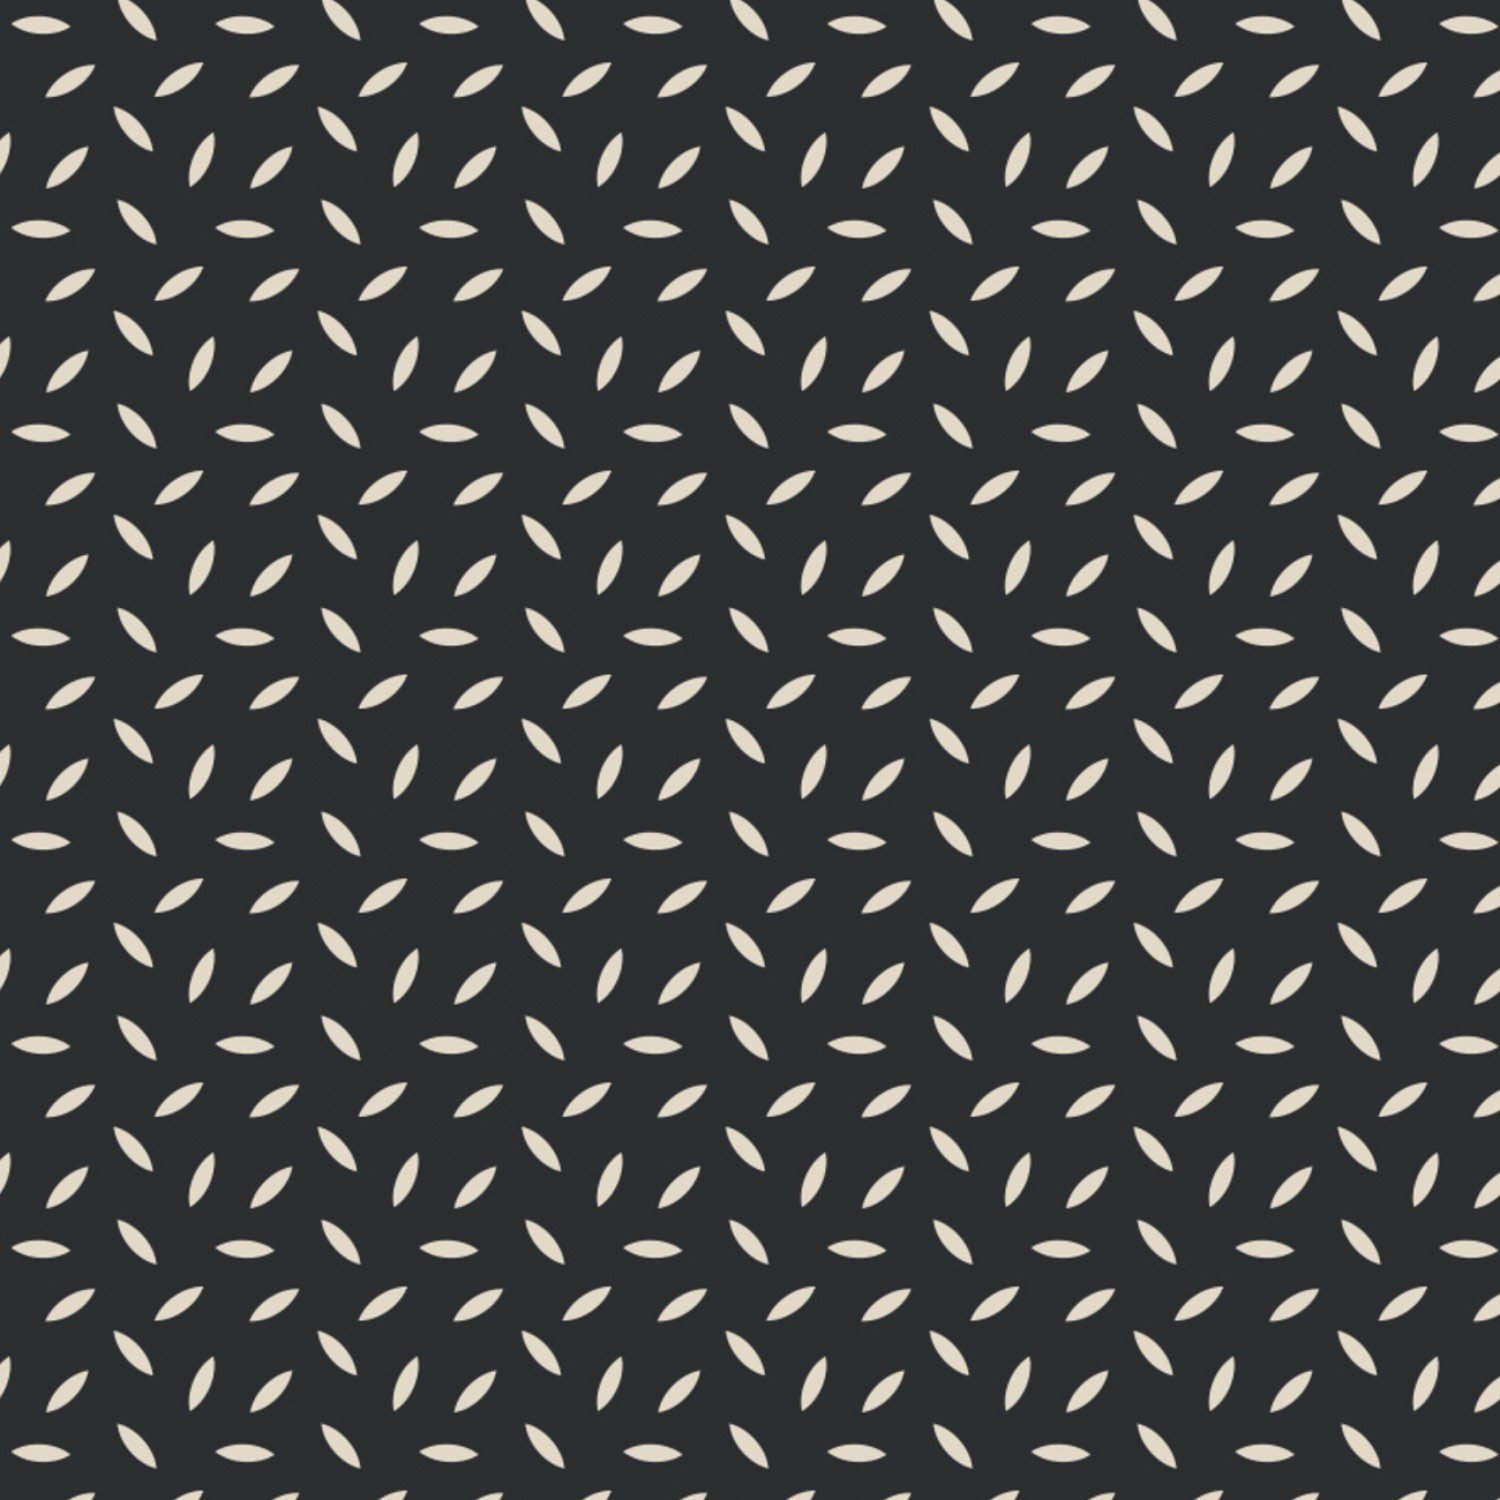 Camelot Cusco 21181602 2 Black Etched $10.20/yd